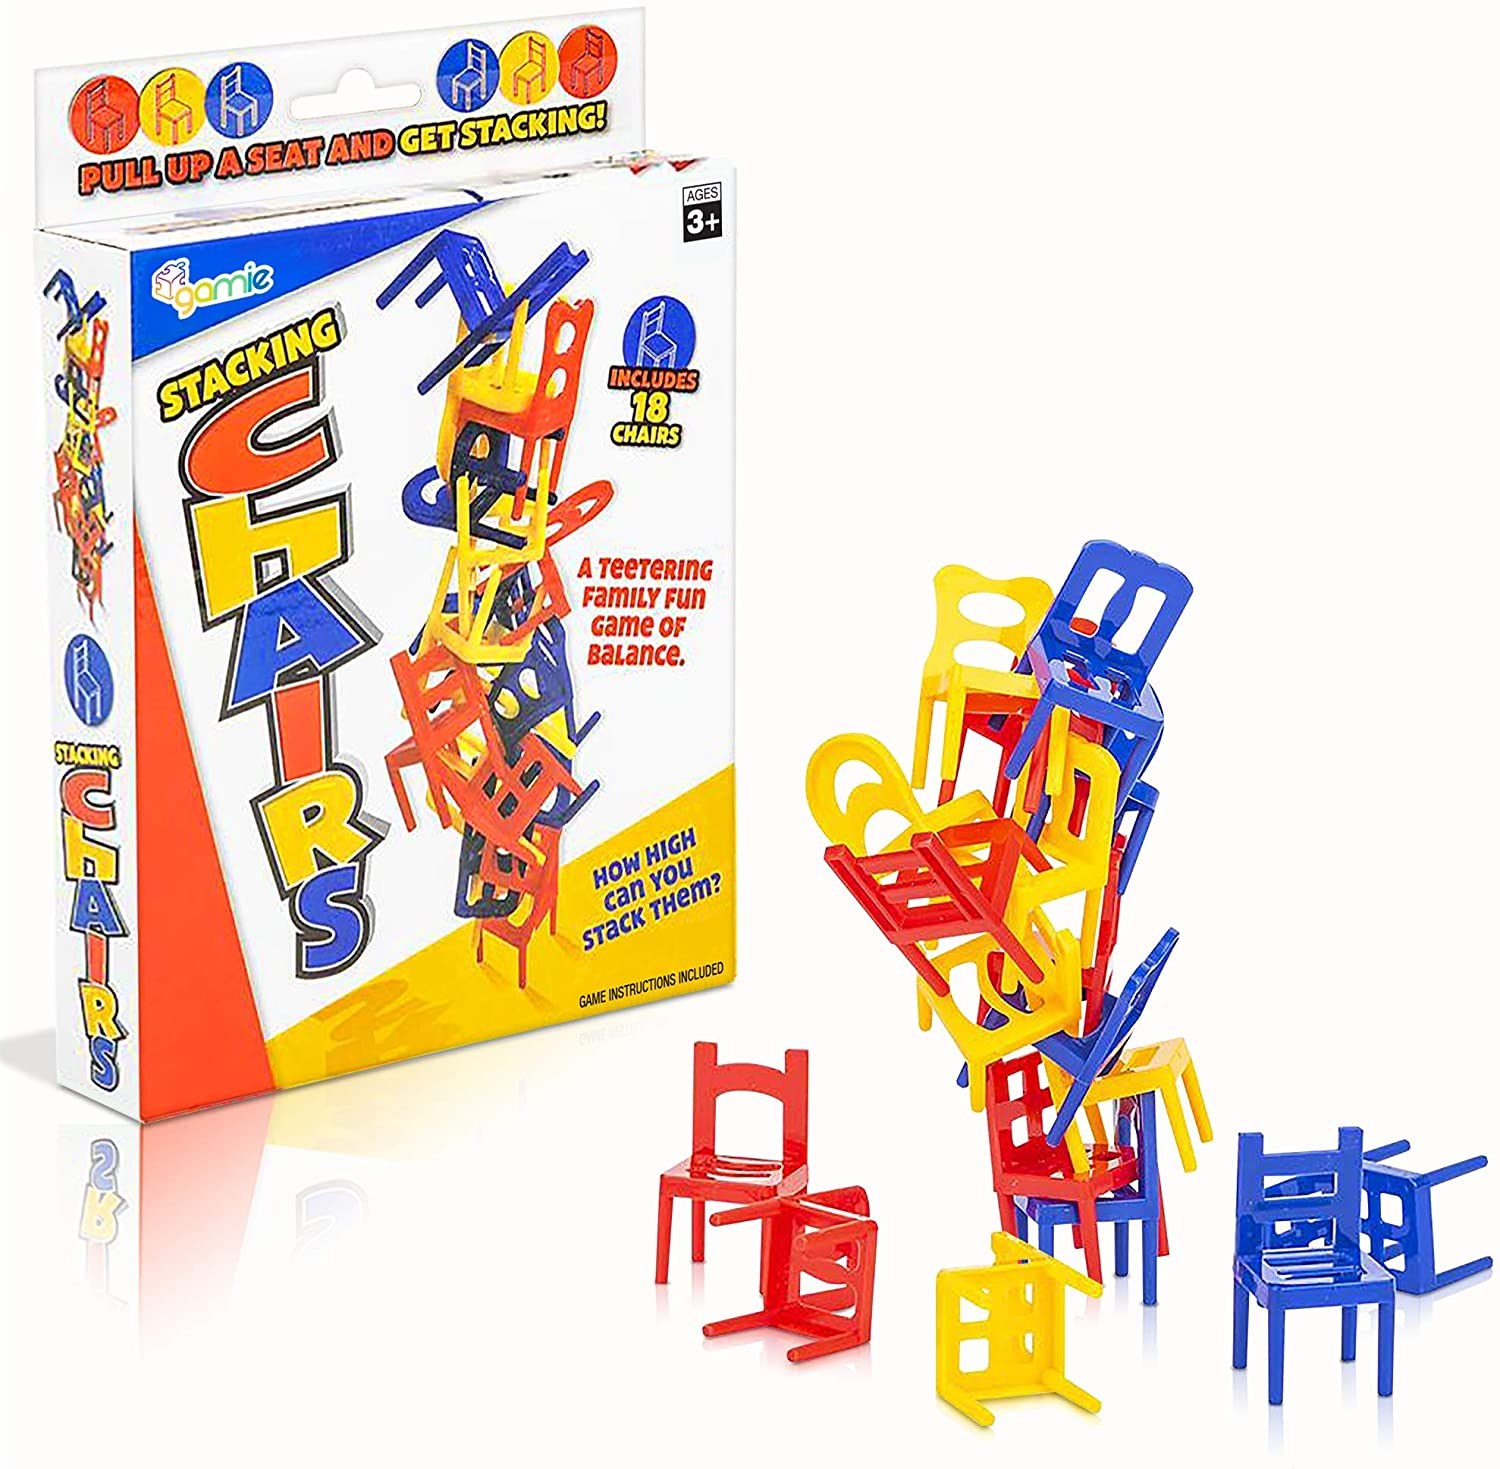 Gamie Balancing Chair Game, 2 Sets, Stacking Chair Games with 18 Mini Chairs & Instruction Guide, New Family Game Night Games for Children, Development Learning Game for Coordination & Balance